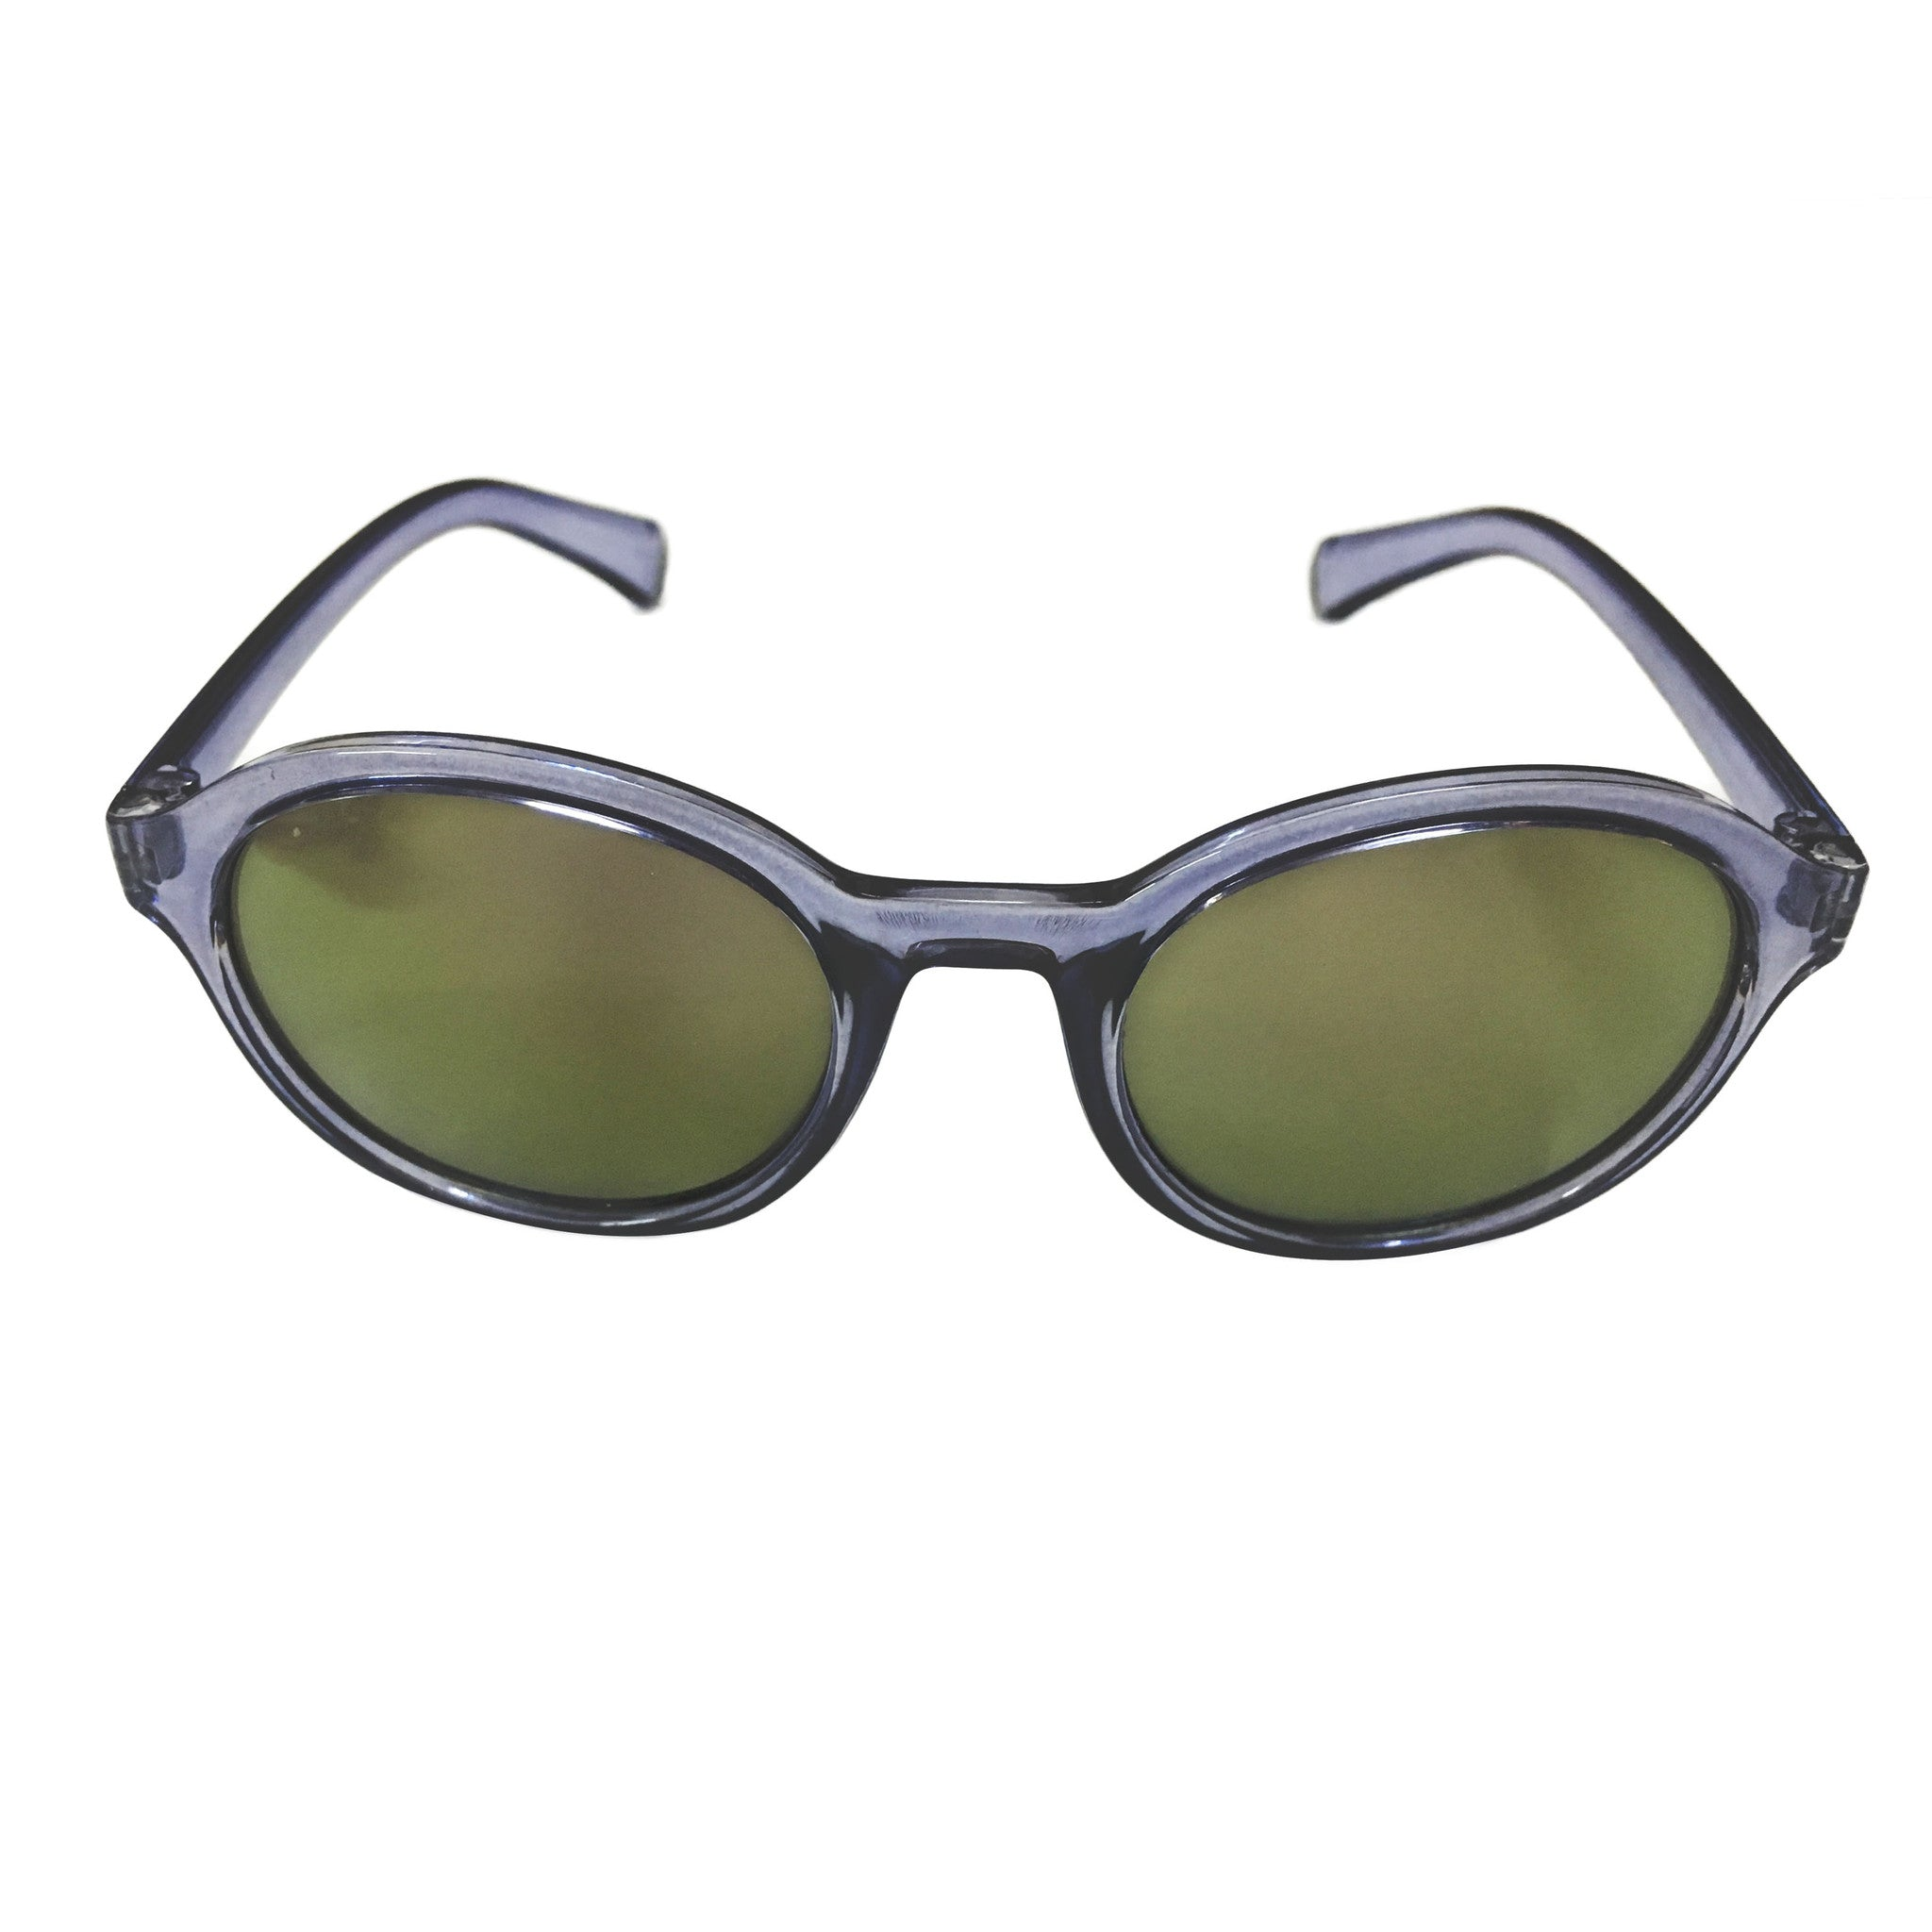 Round Reflector Sunglasses - Crochita - 6